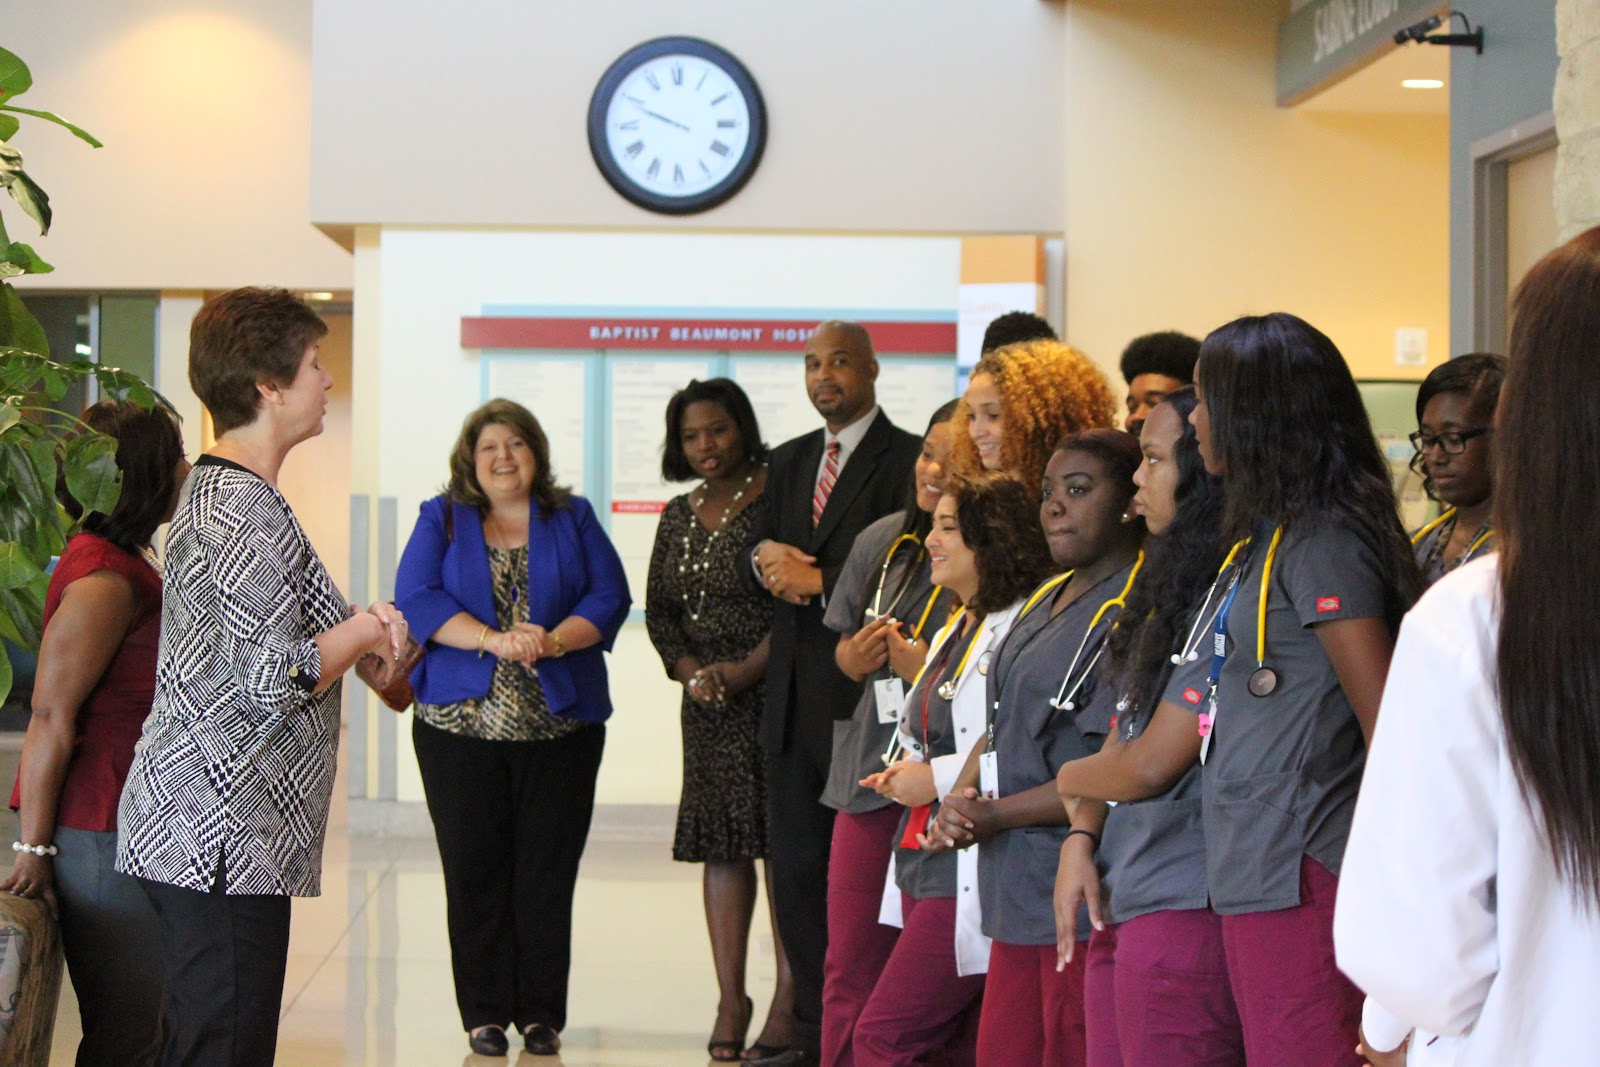 central receives equipment from baptist hospital